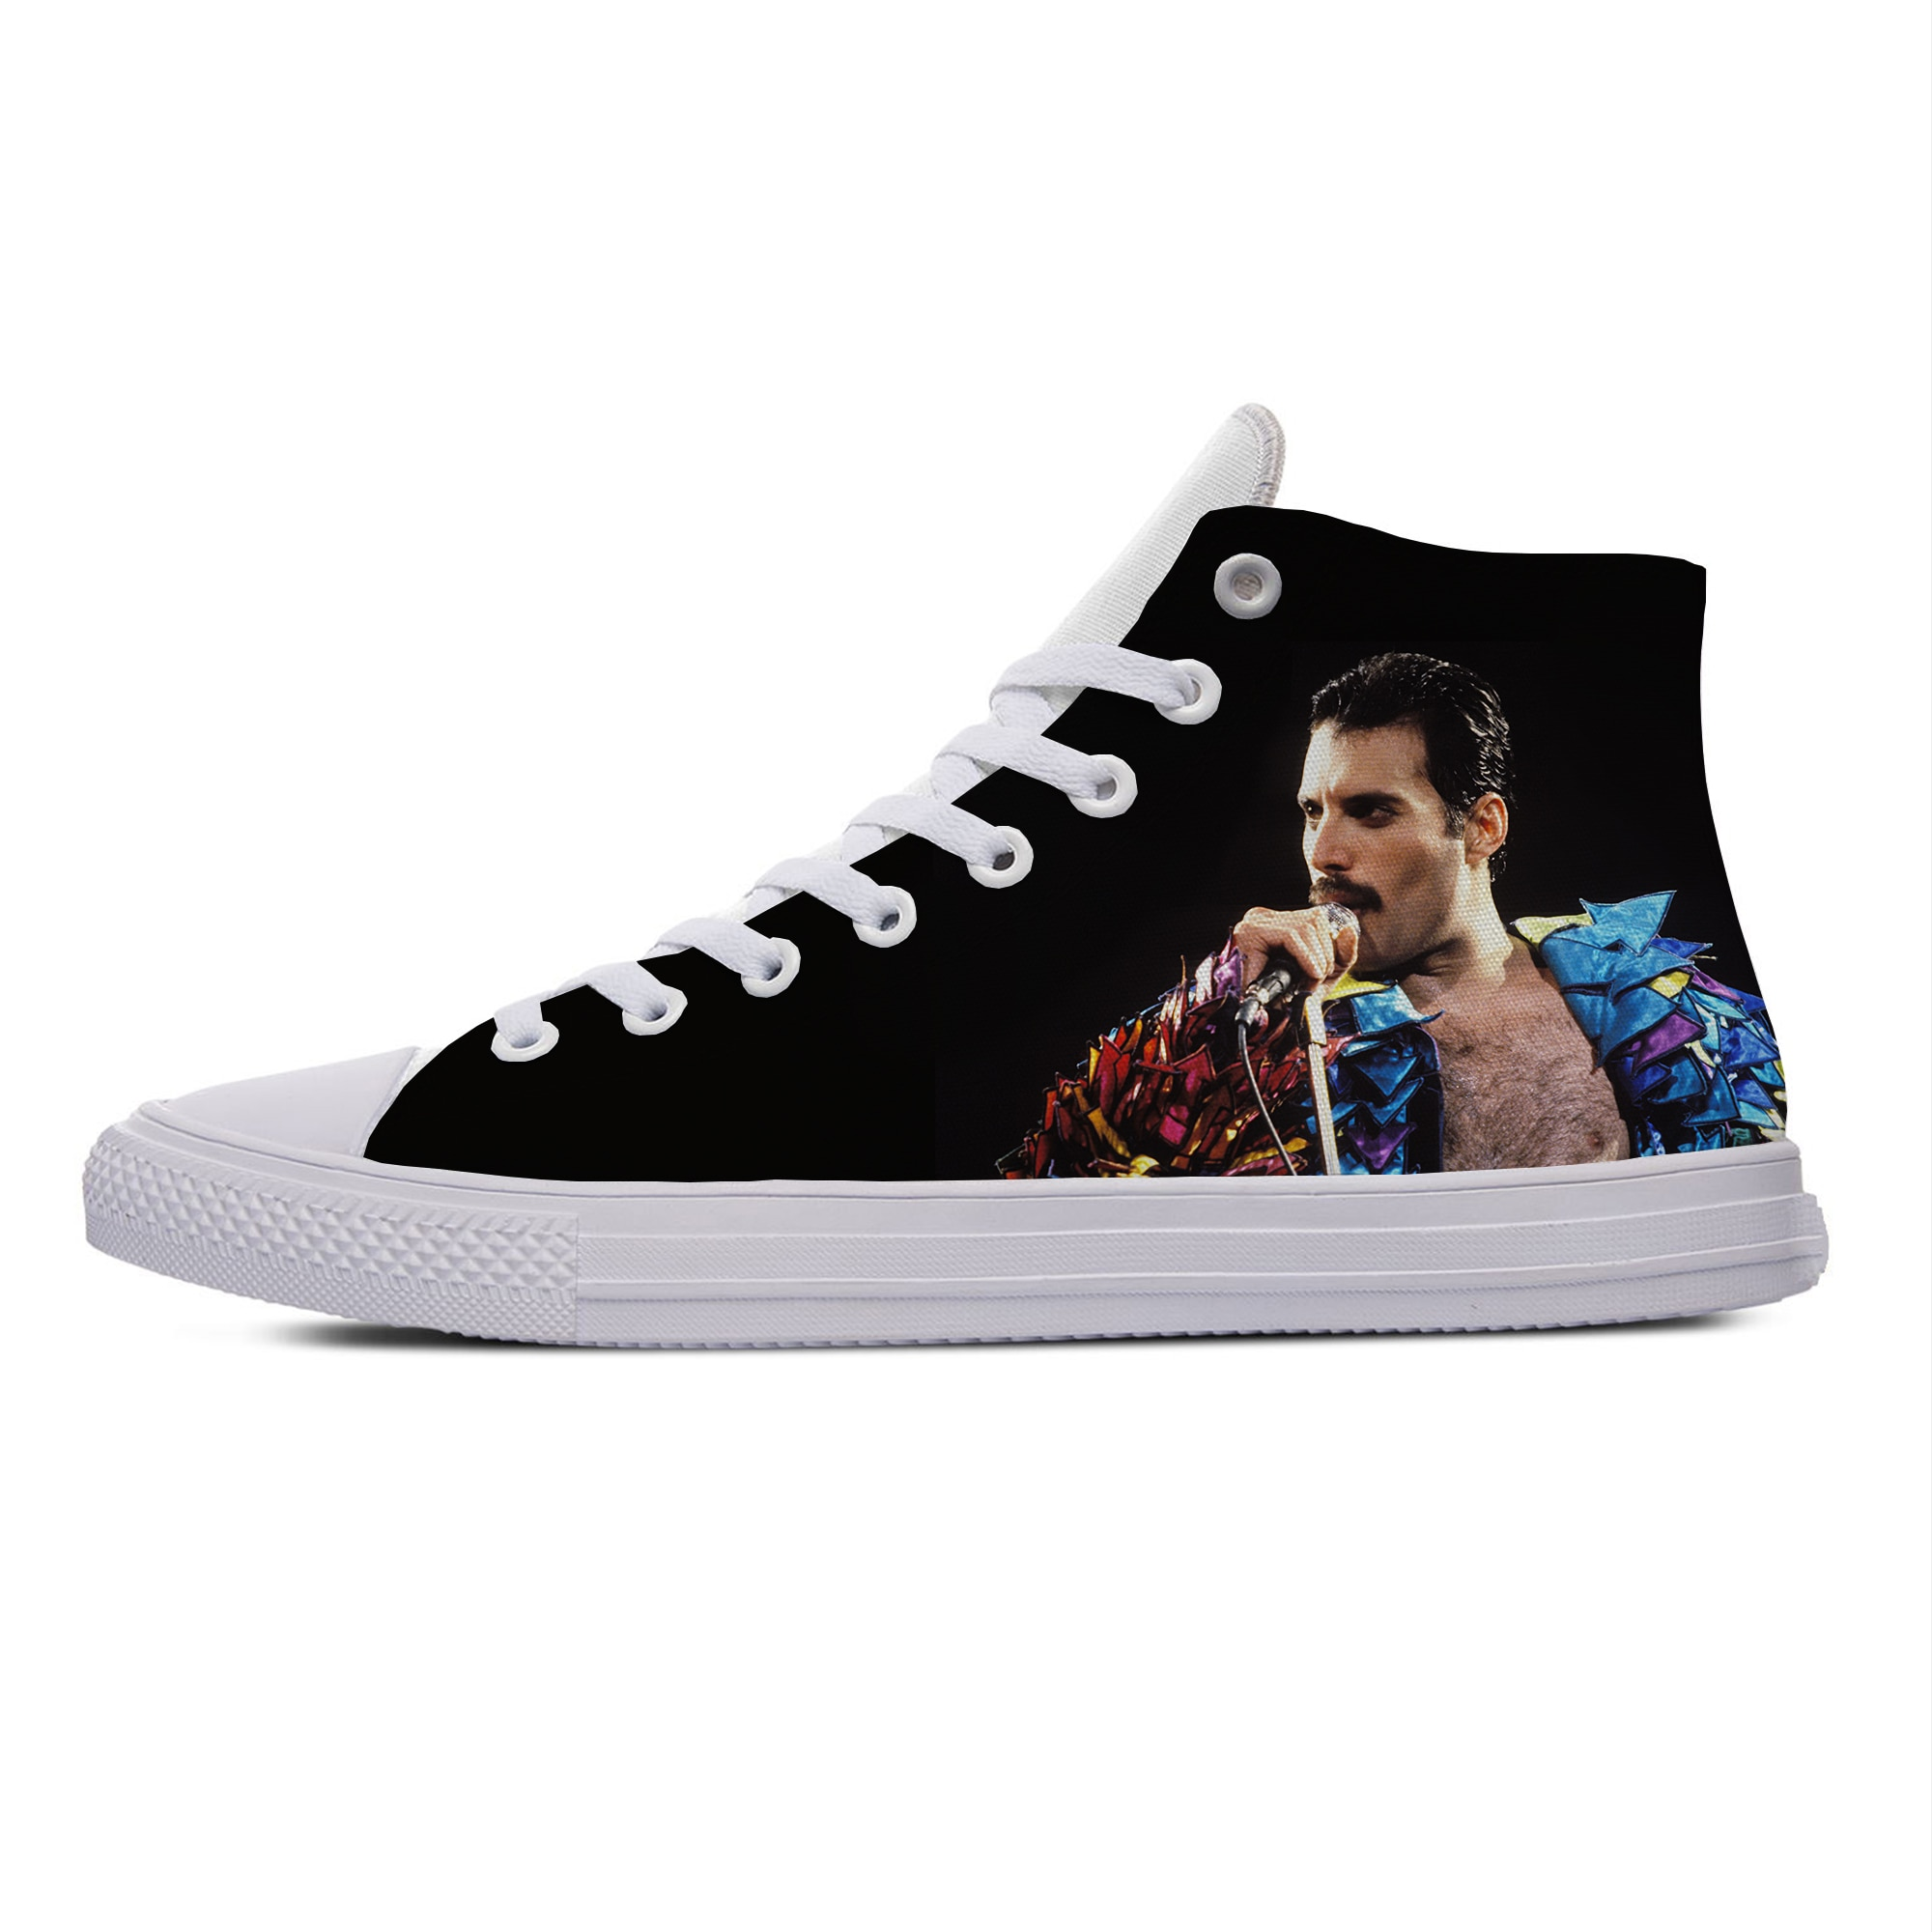 Cool Freddie Mercury Queen Rock Hot Handsome Fashion Casual Canvas Shoes Popular Breathable Lightweight Sneakers Men Women